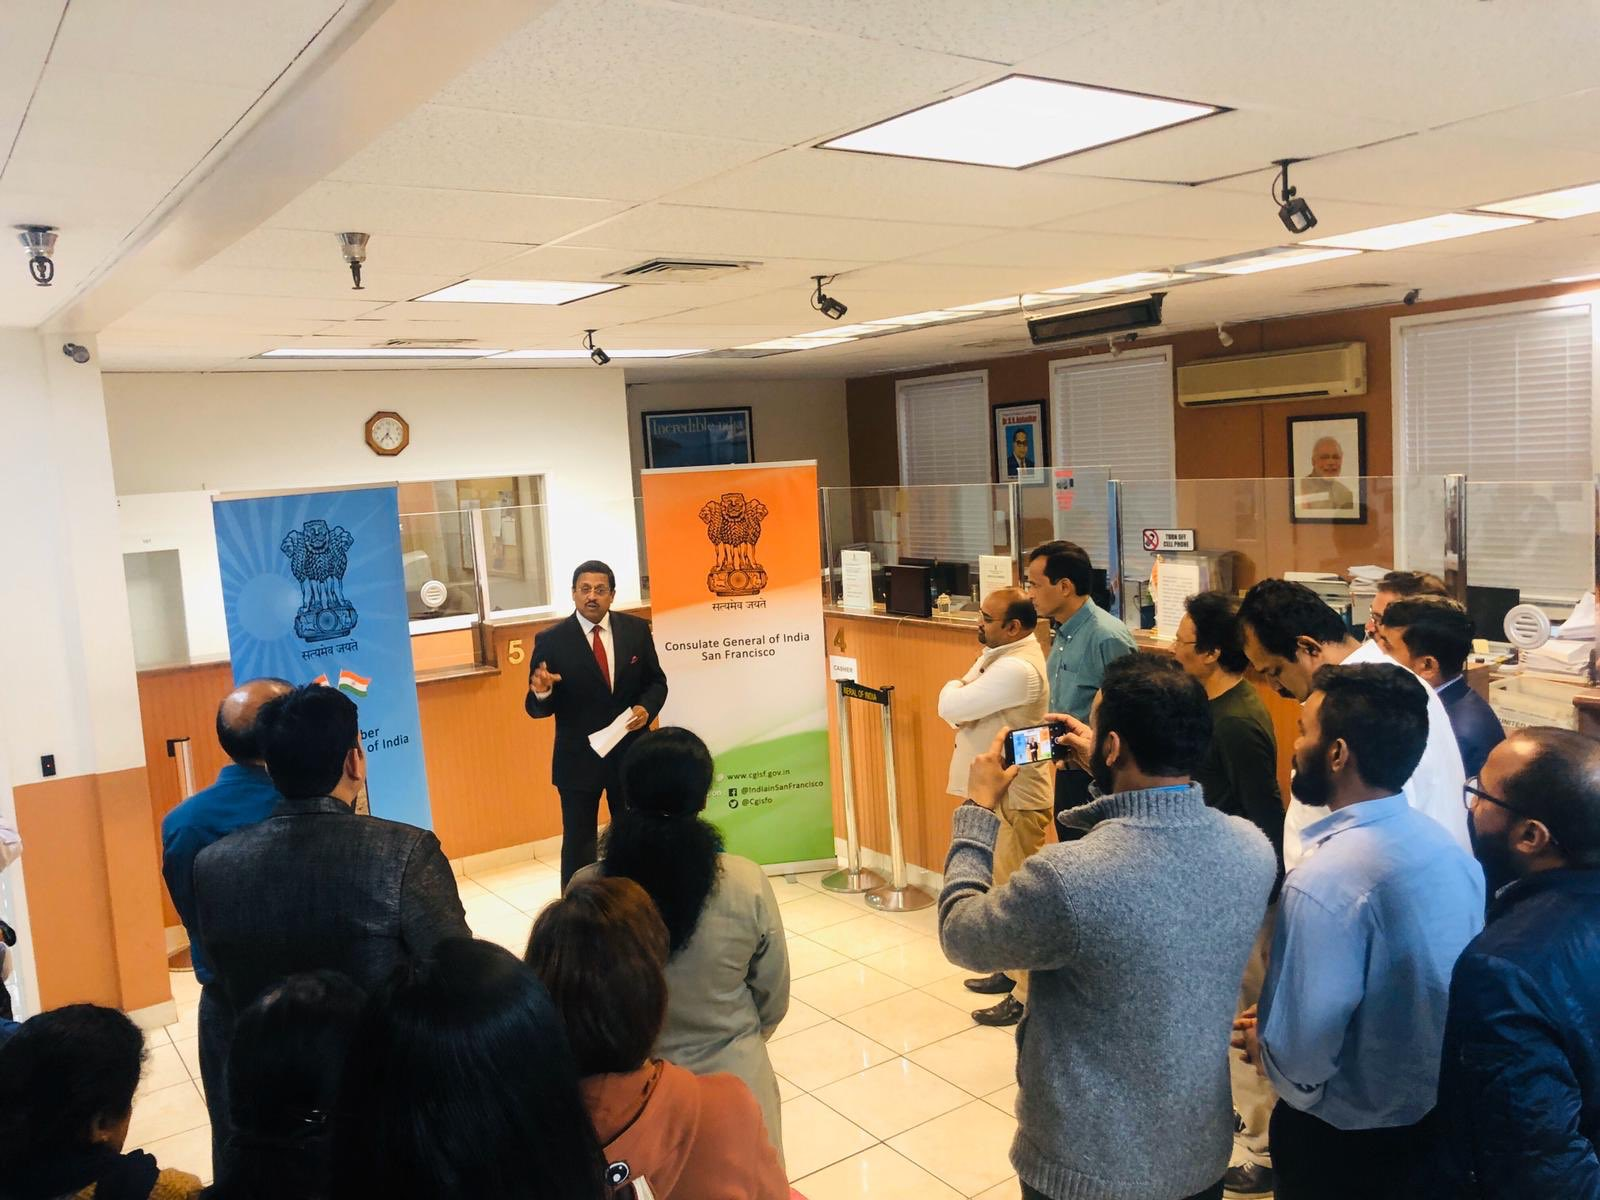 India in San Francisco, Consul General Amb. Sanjay Panda readout Fundamental Duties as enshrined in the Part-IVA of the Constitution, in continuation of celebrations to mark the 70th anniversary of Indian Constitution.